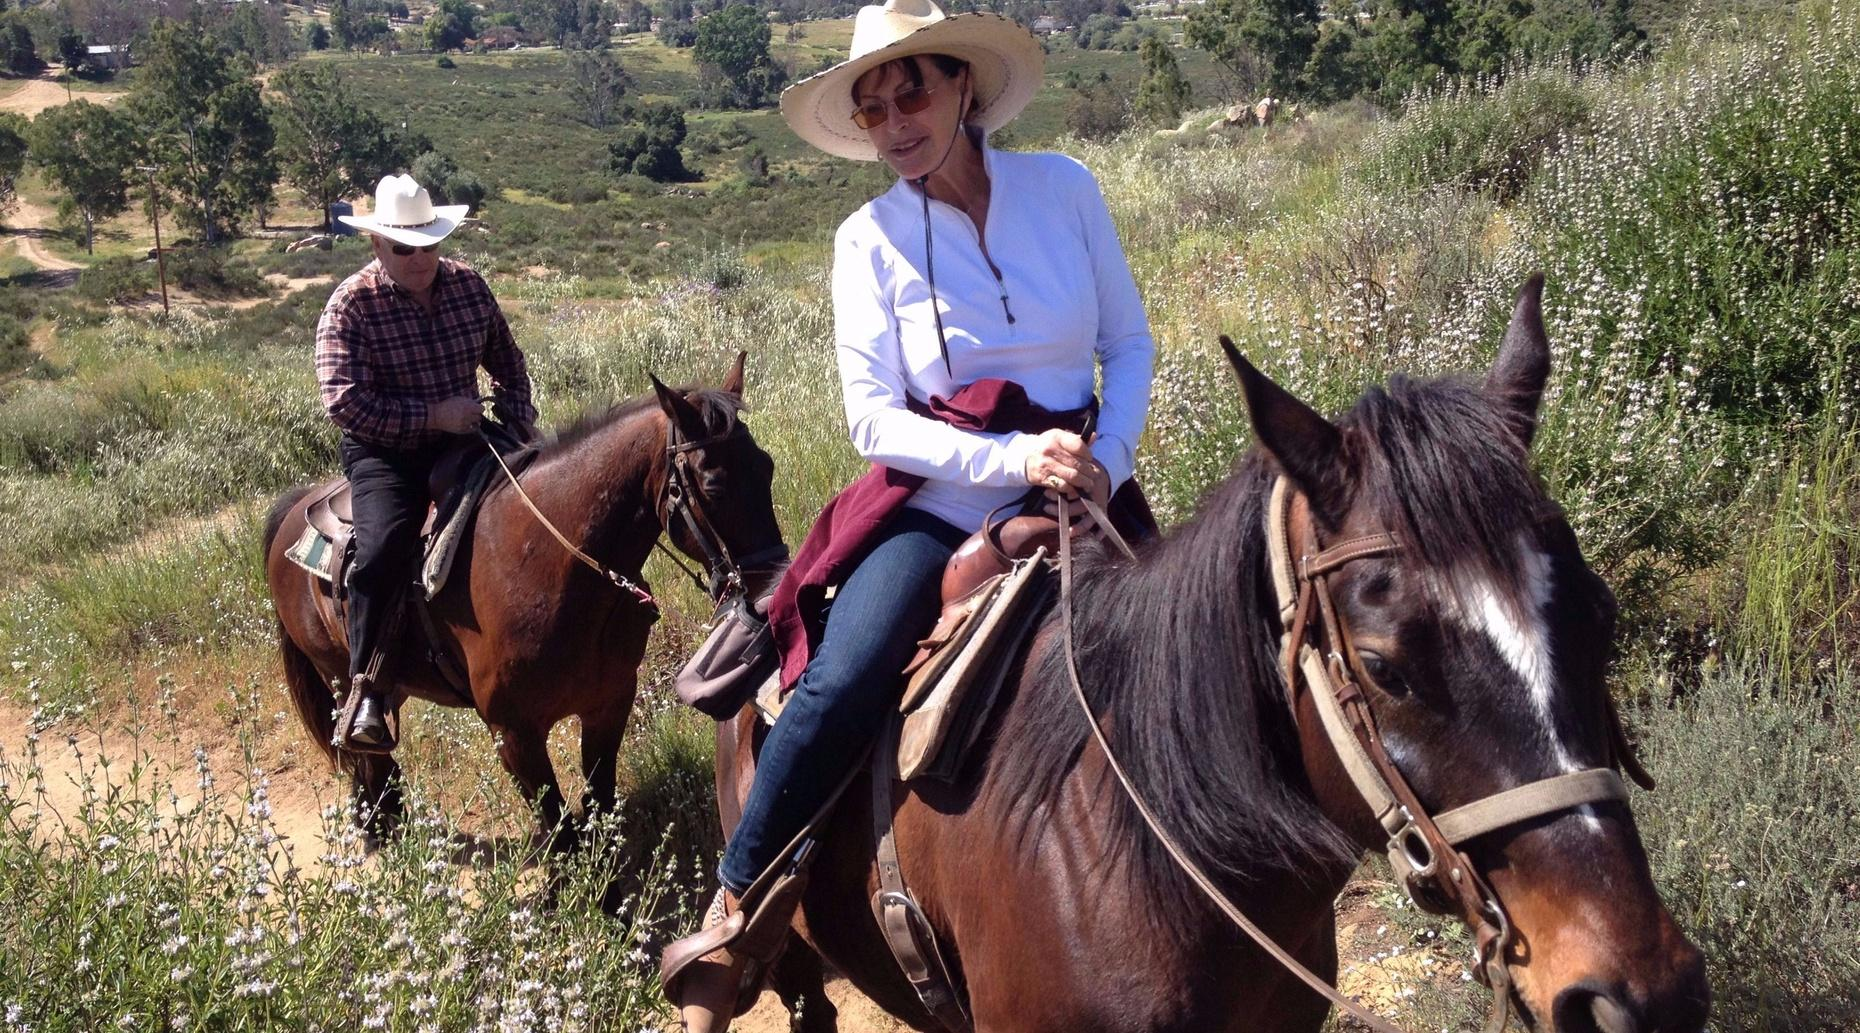 90-Minute Horseback Ride in Murrieta